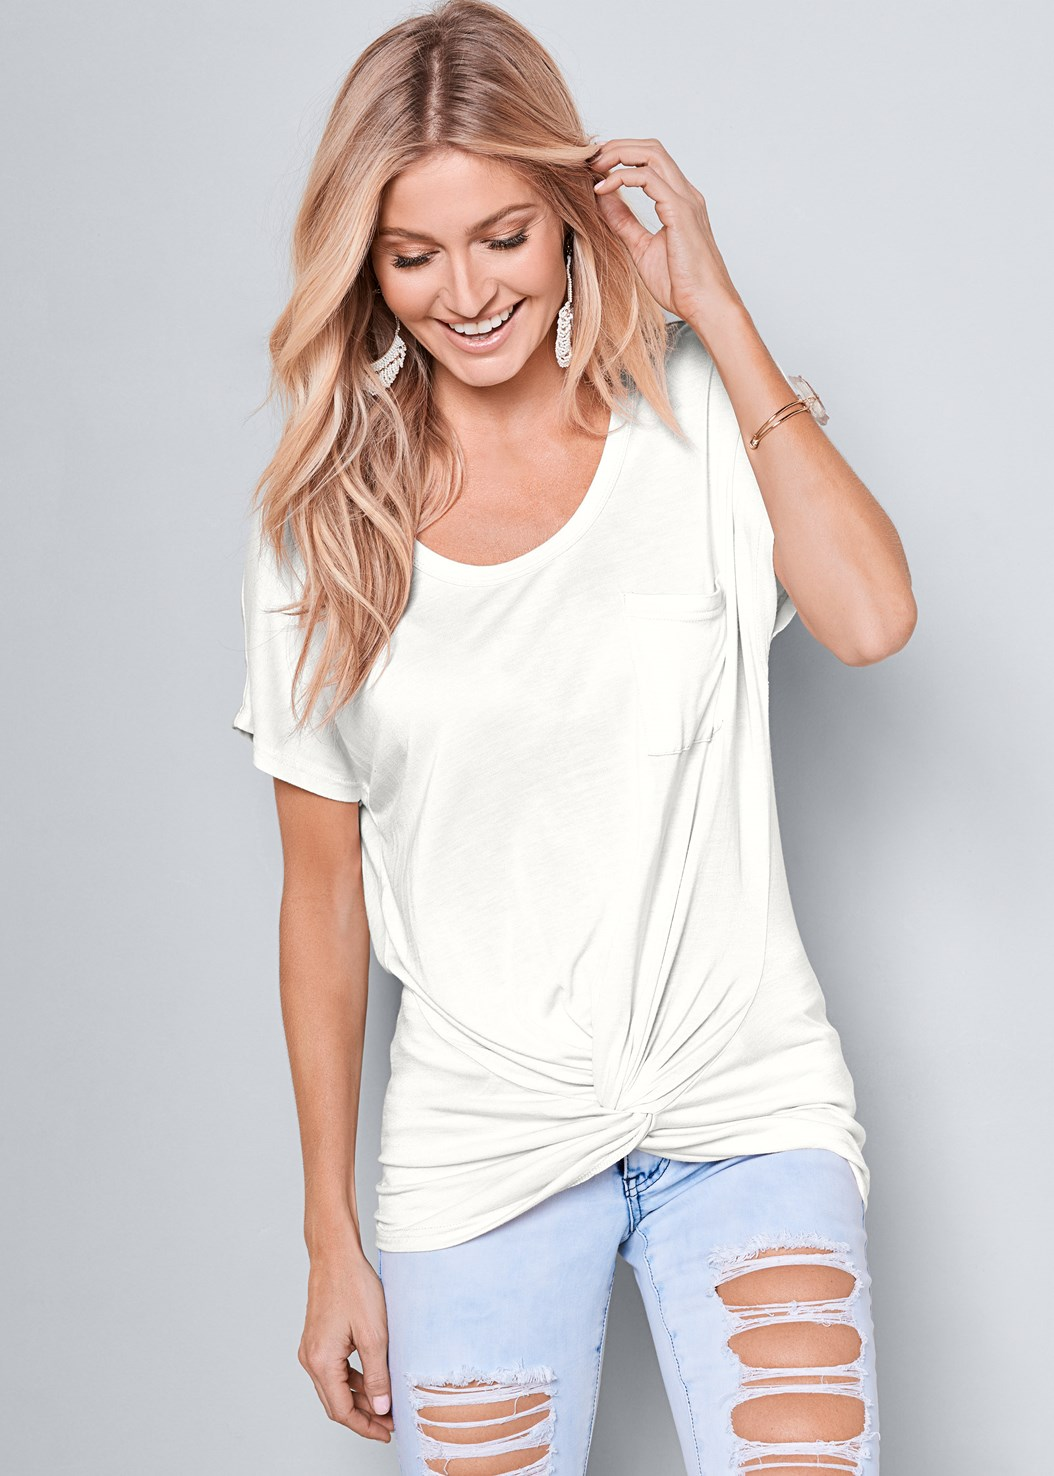 Twisted Knot Detail Tee,Mid Rise Color Skinny Jeans,Long Jean Shorts,Lucite Detail Print Heels,Beaded Fringe Earrings